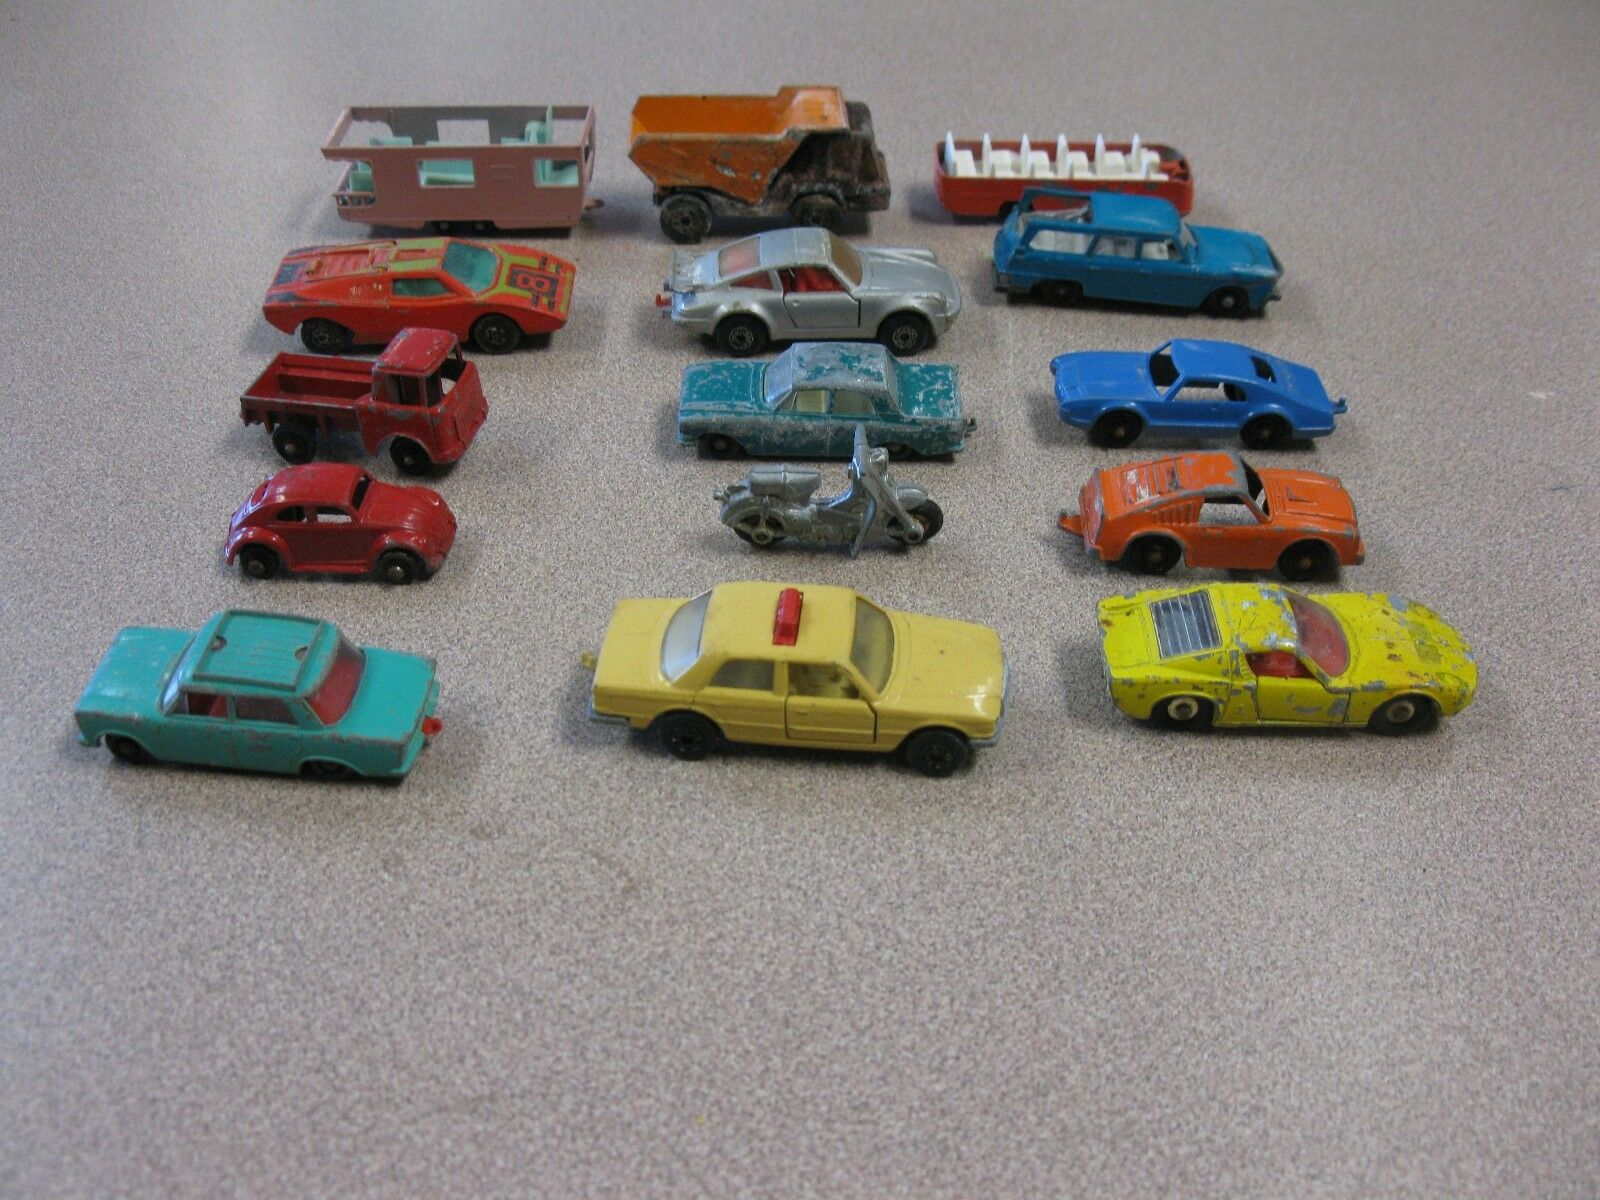 VINTAGE METAL METAL METAL CAR LOT OF 15 CARS  8c3973 - munpfu